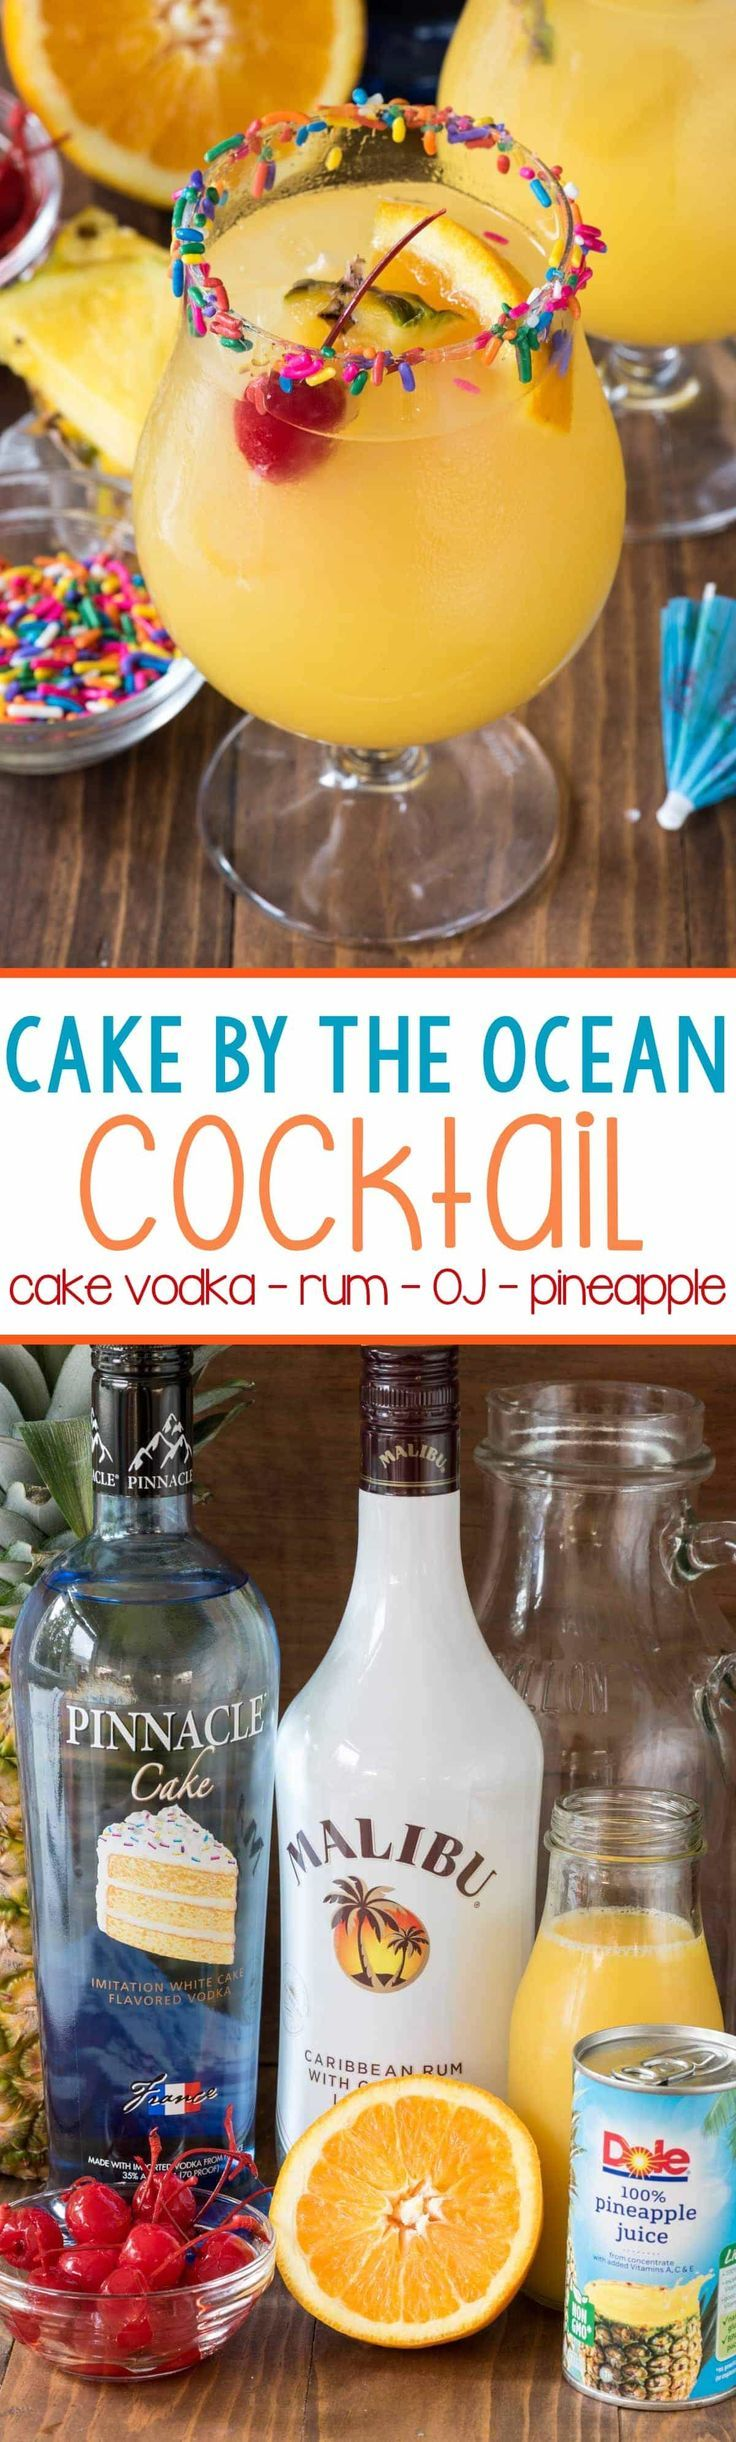 Cake by the Ocean Cocktail made with Cake Vodka, Coconut Rum, Orange and Pineapple Juices! You can whip up a pitcher of these in less than 5 minutes! (chrismas party food for adults)